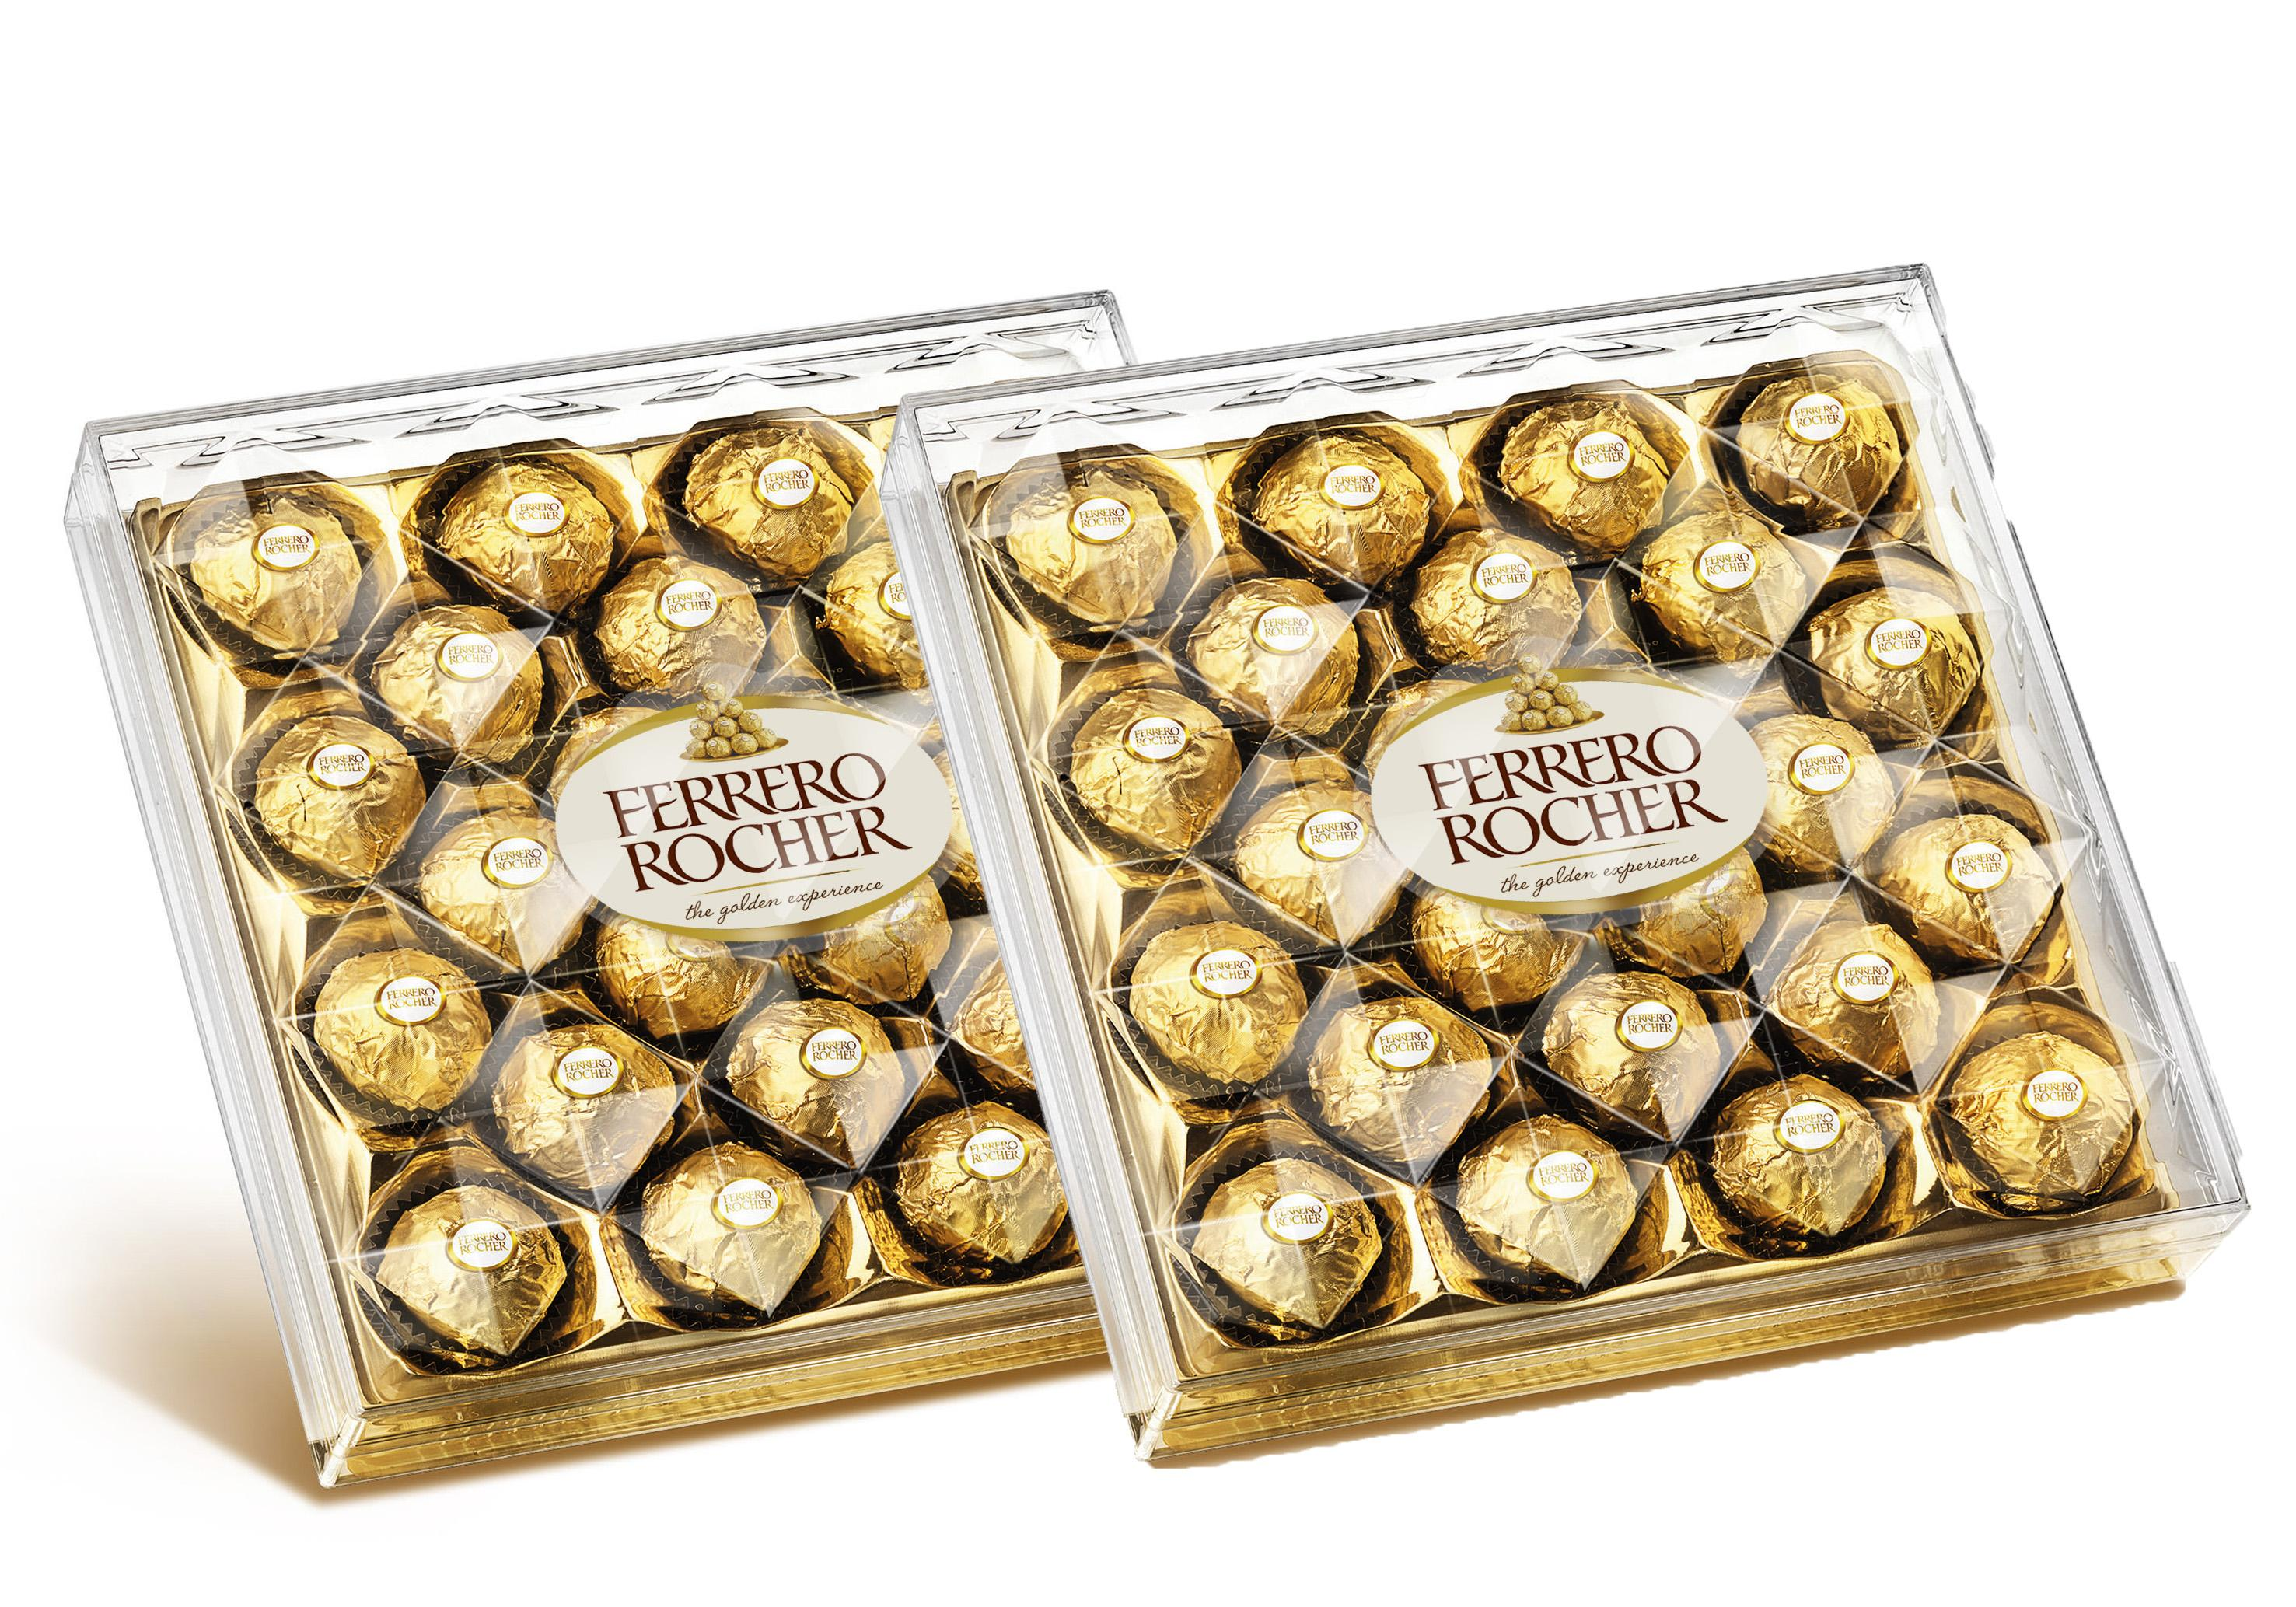 FERRERO ROCHER THE GOLDEN EWPERIENCE 300G